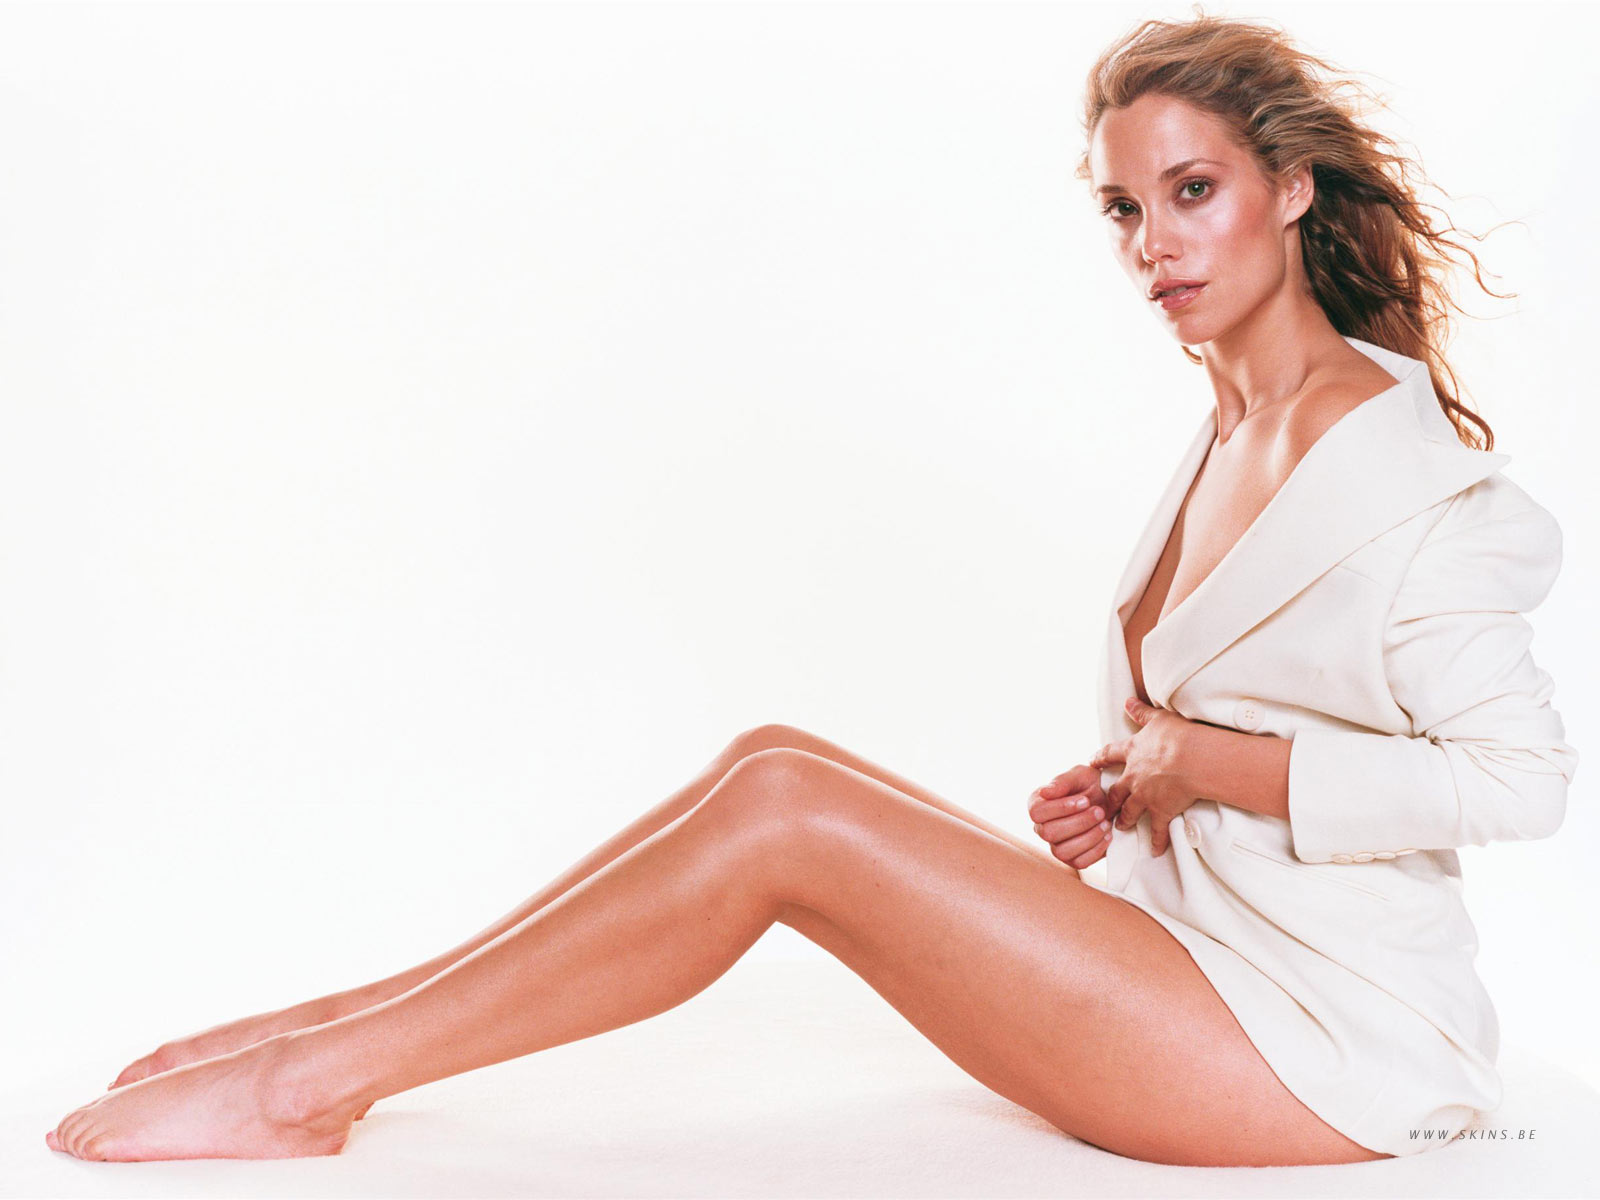 Download High quality only white jacket Elizabeth Berkley wallpaper / 1600x1200